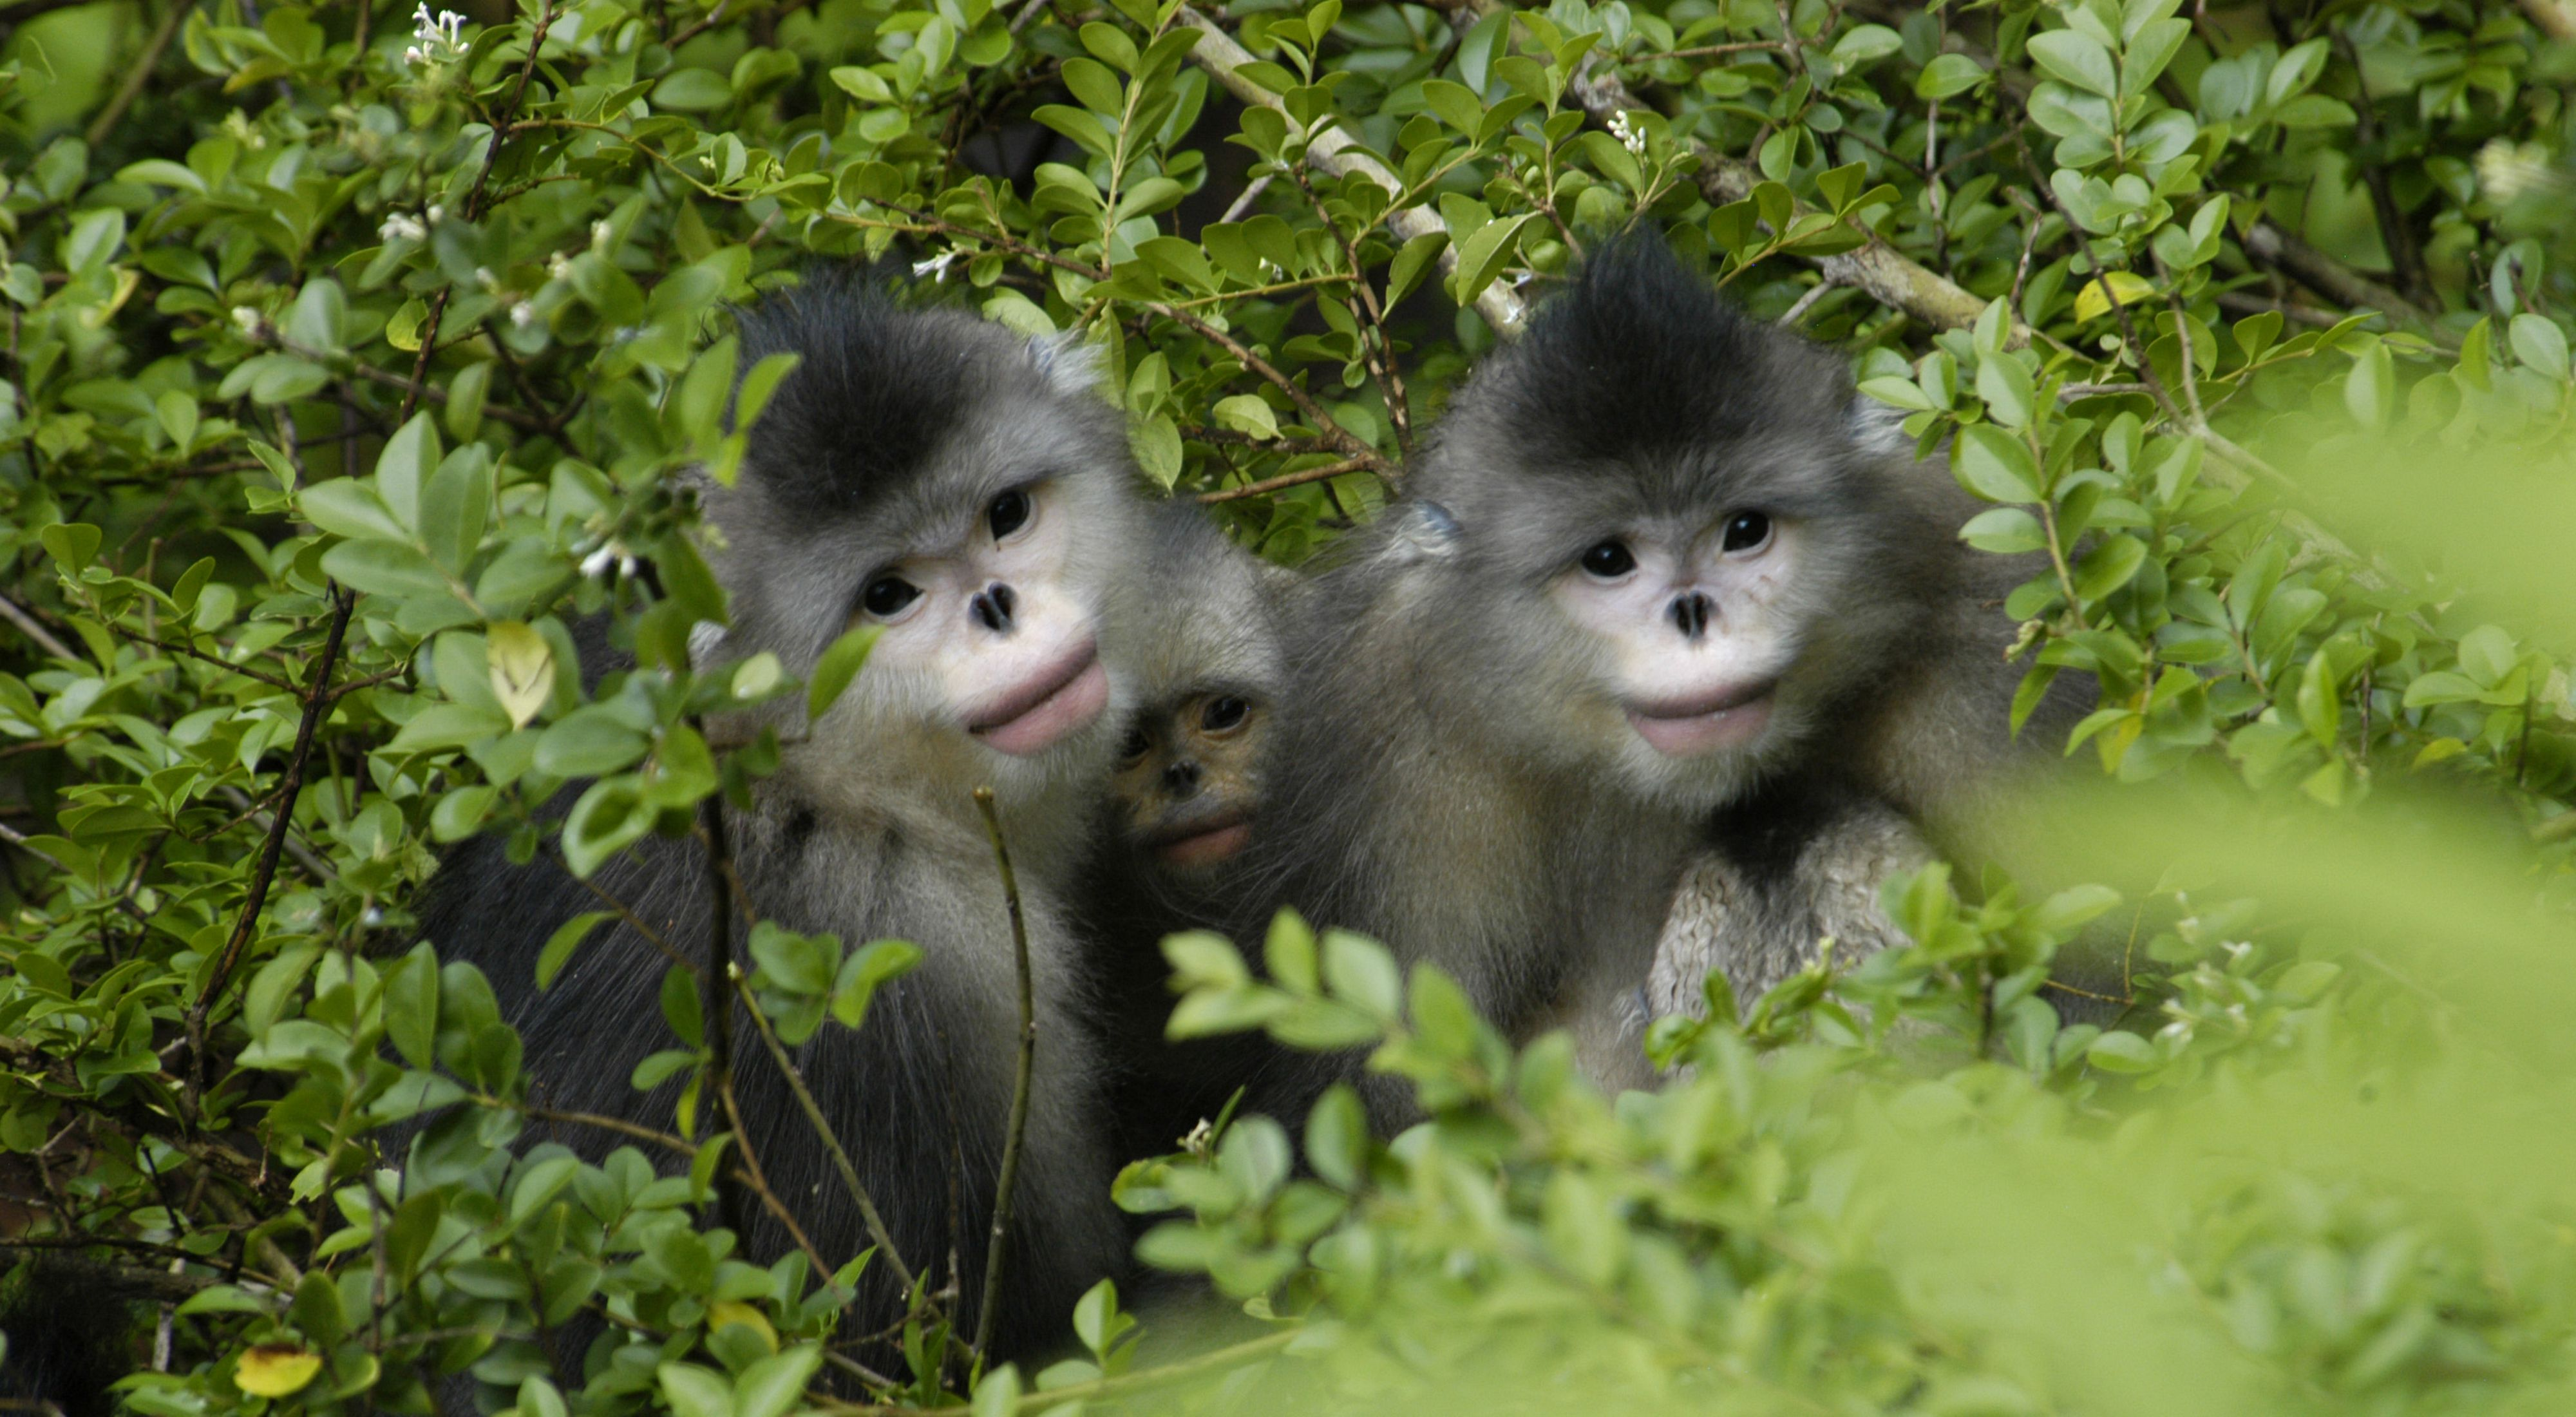 3 small black and white monkeys with flat noses peer out of green shrubbery